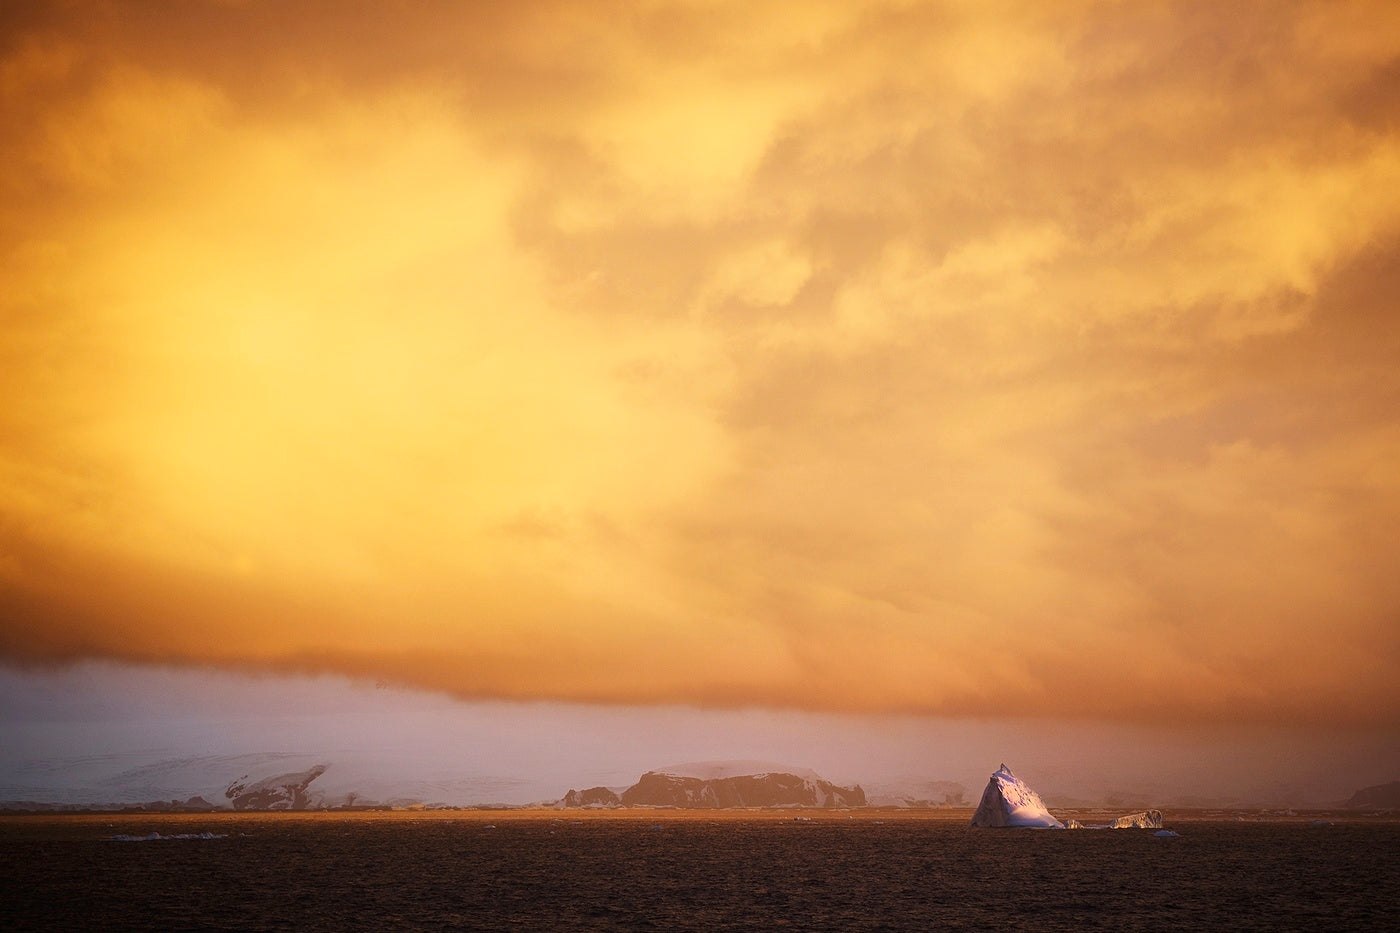 Sunlight in Antarctica creating a vivid orange sky above the continent